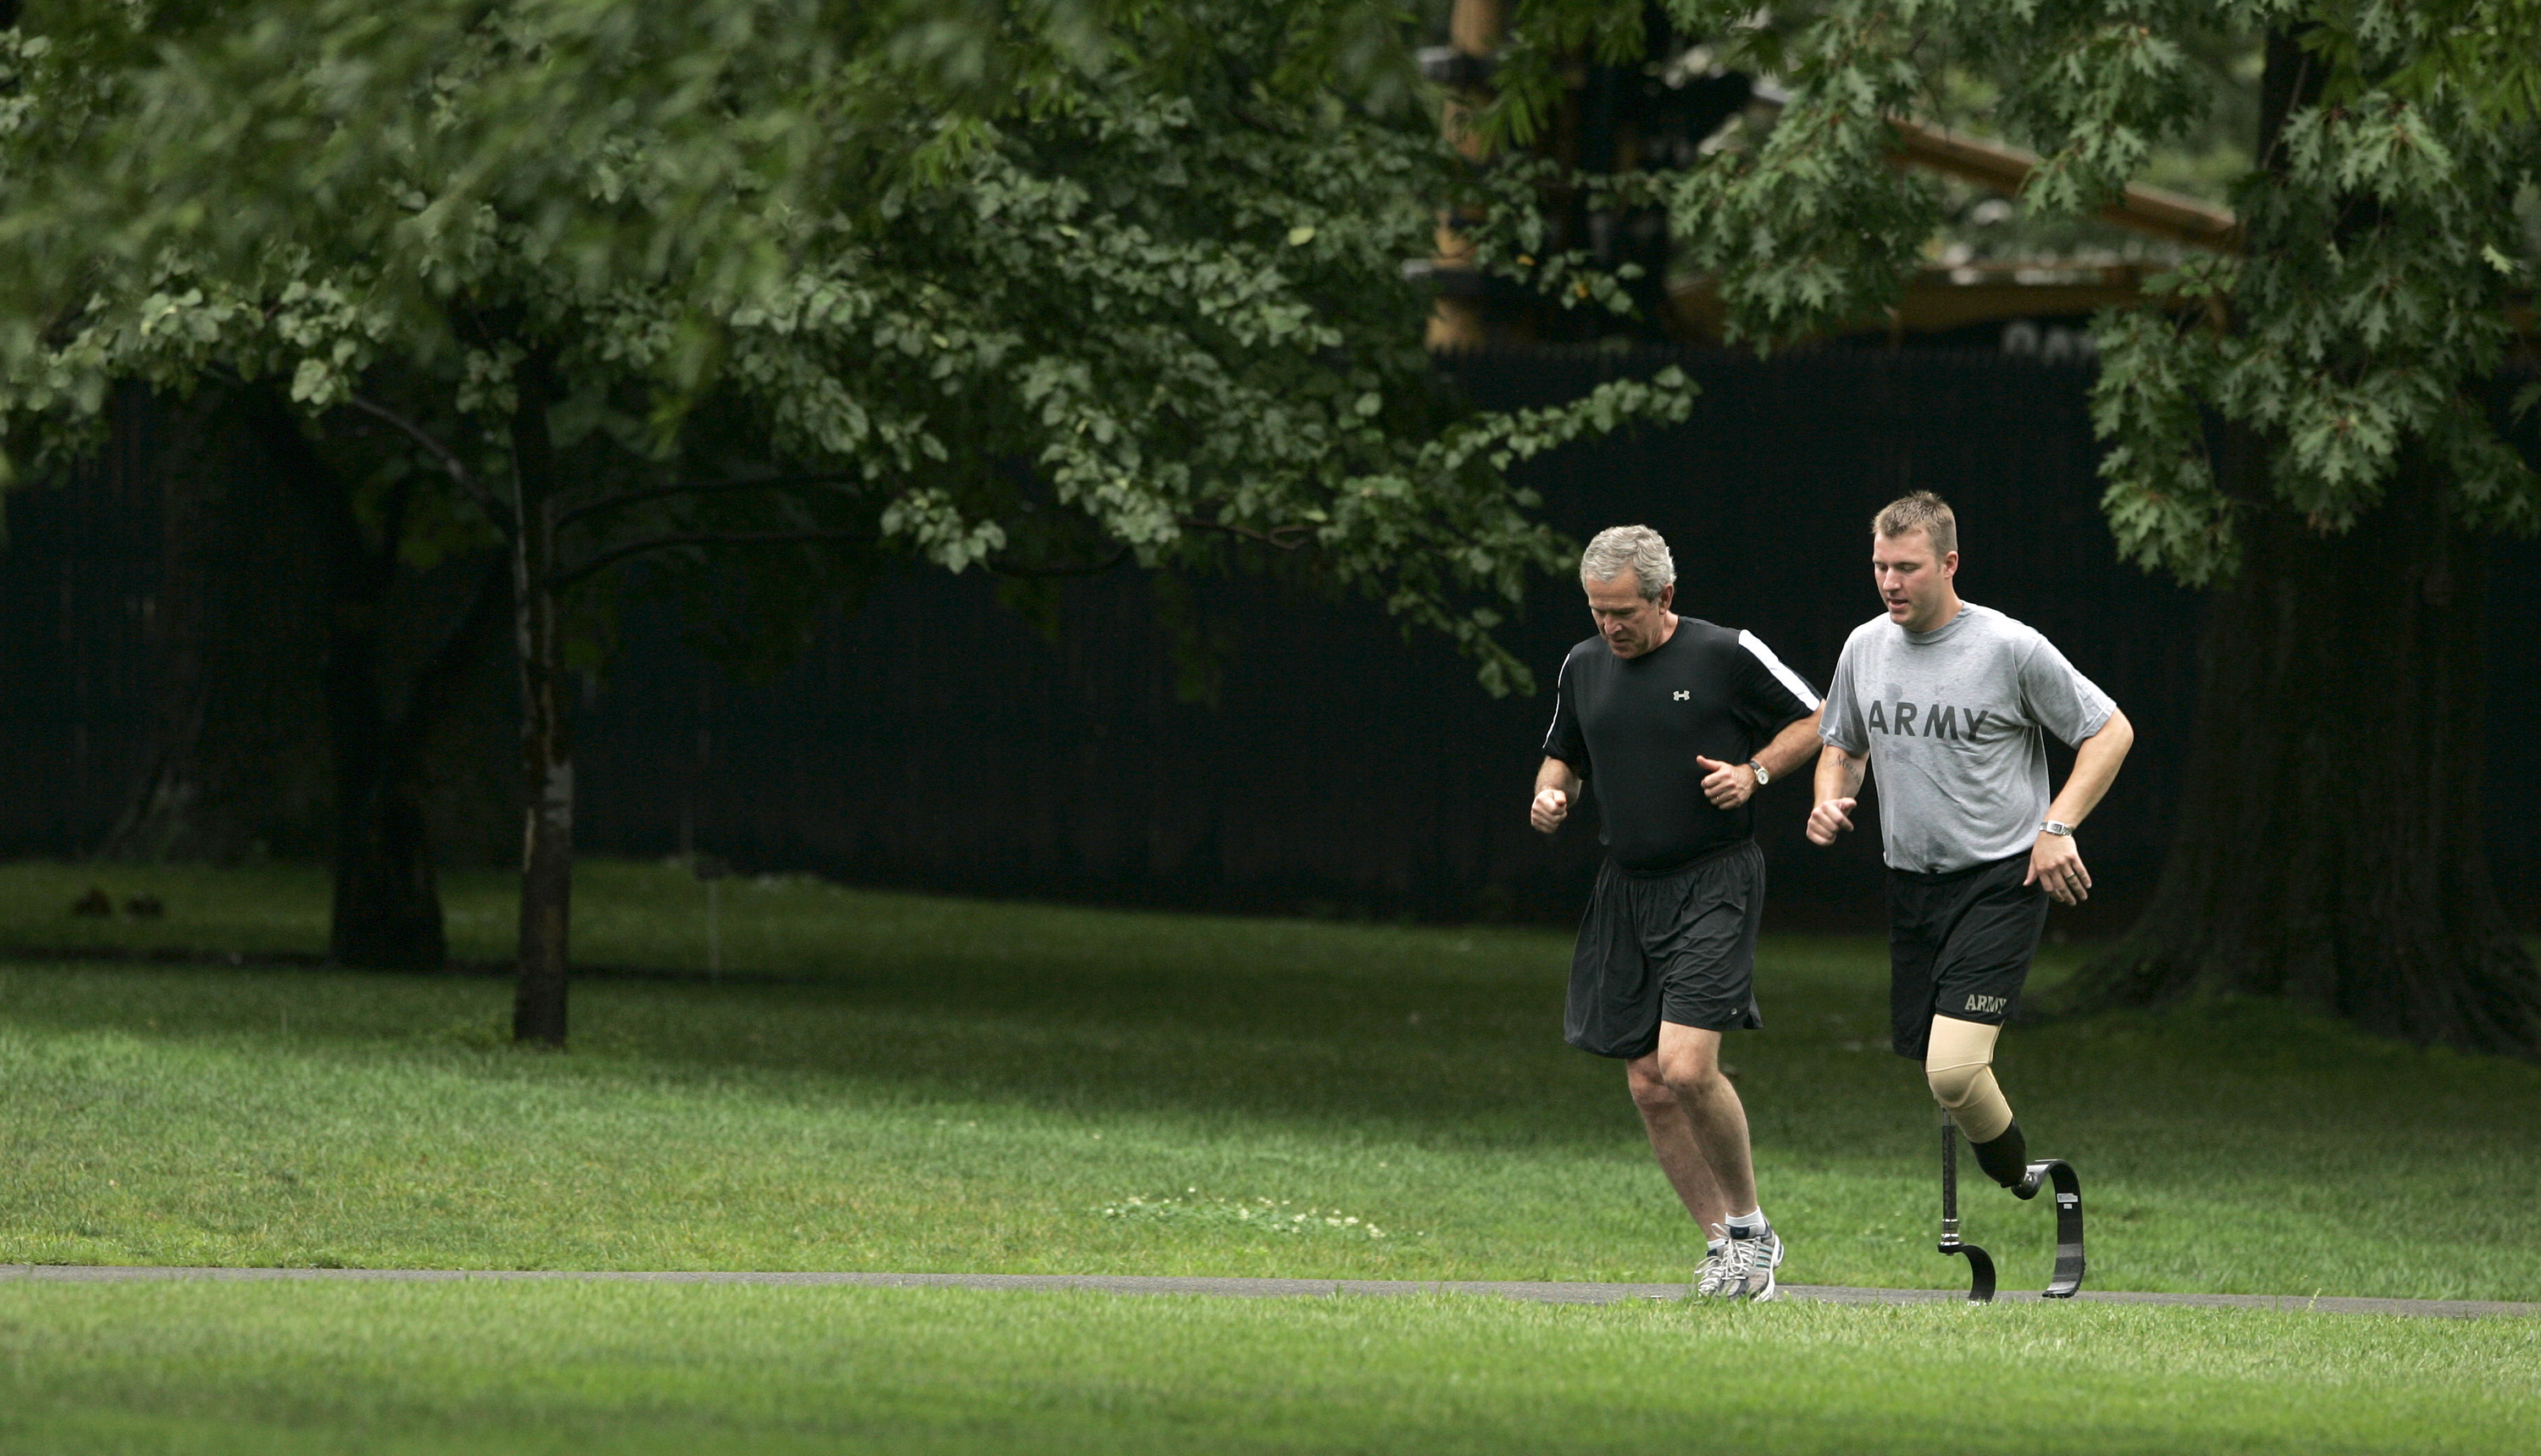 Former US President George W. Bush jogs with Army Staff Sergeant Christian Bagge, at the White House in Washington on June 27, 2006.